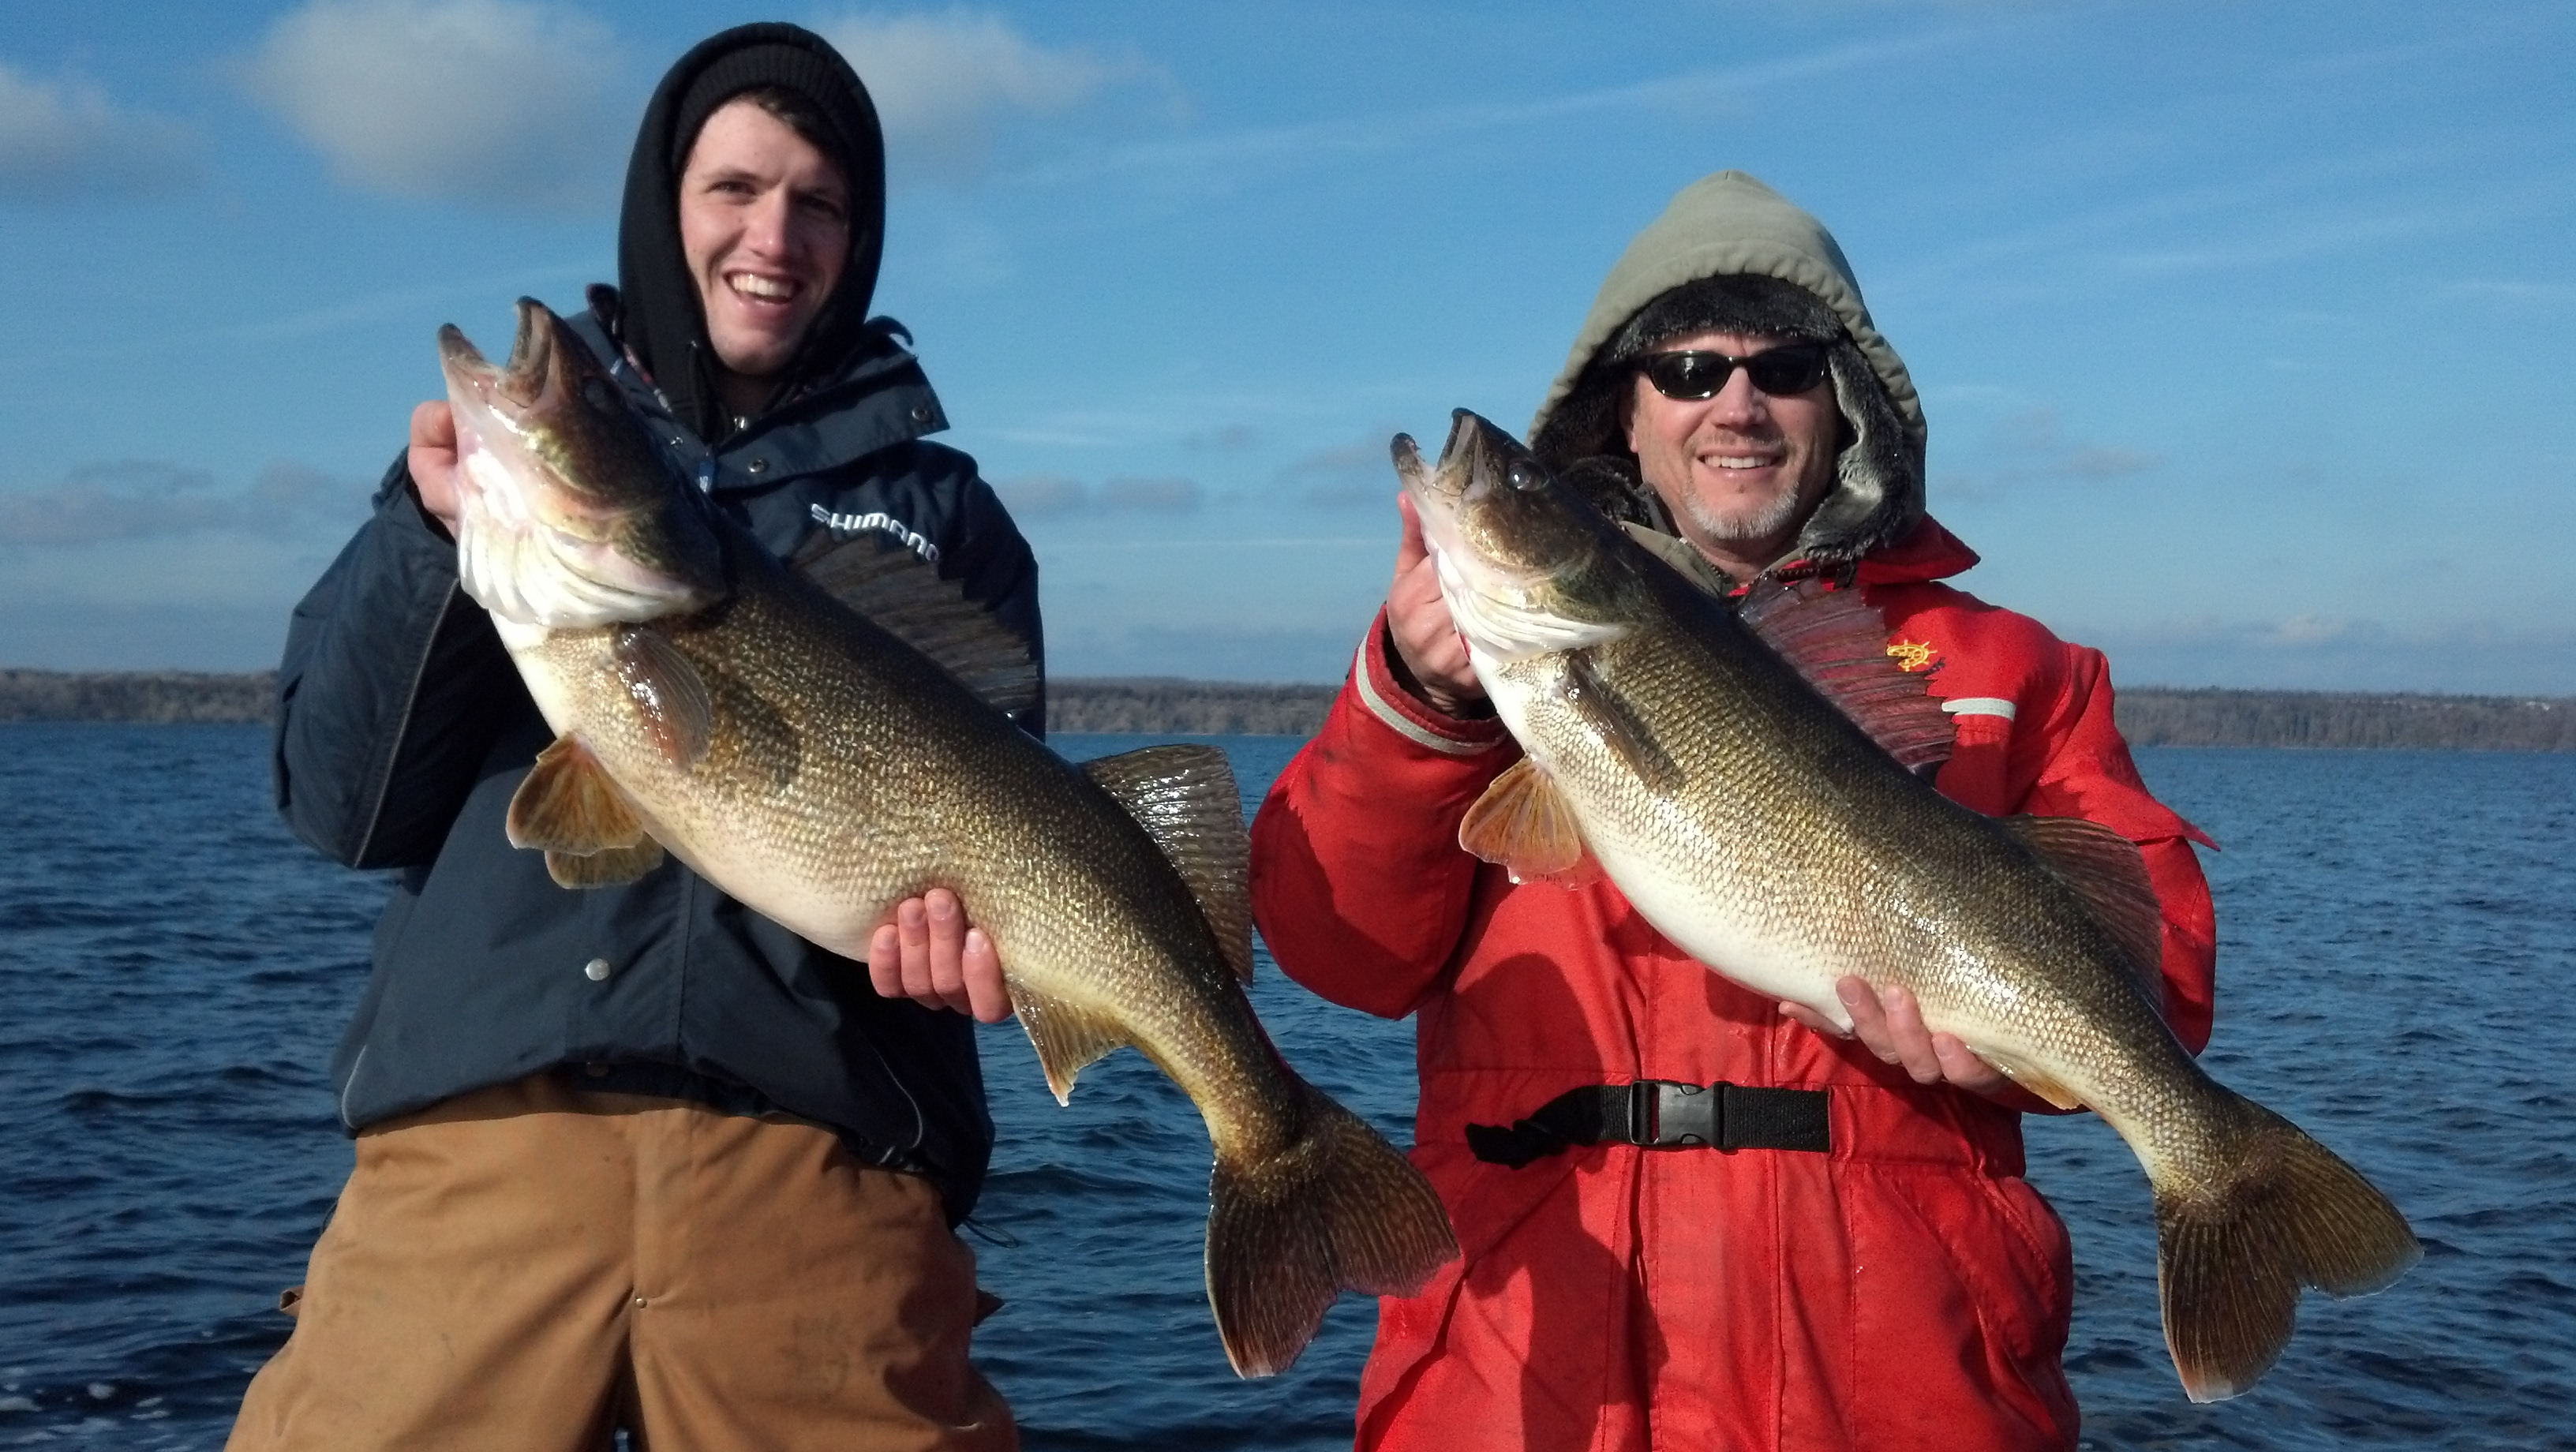 Len Hordyk Burlington Ontario  Late season walleye fishing on the Bay of Quinte can be very